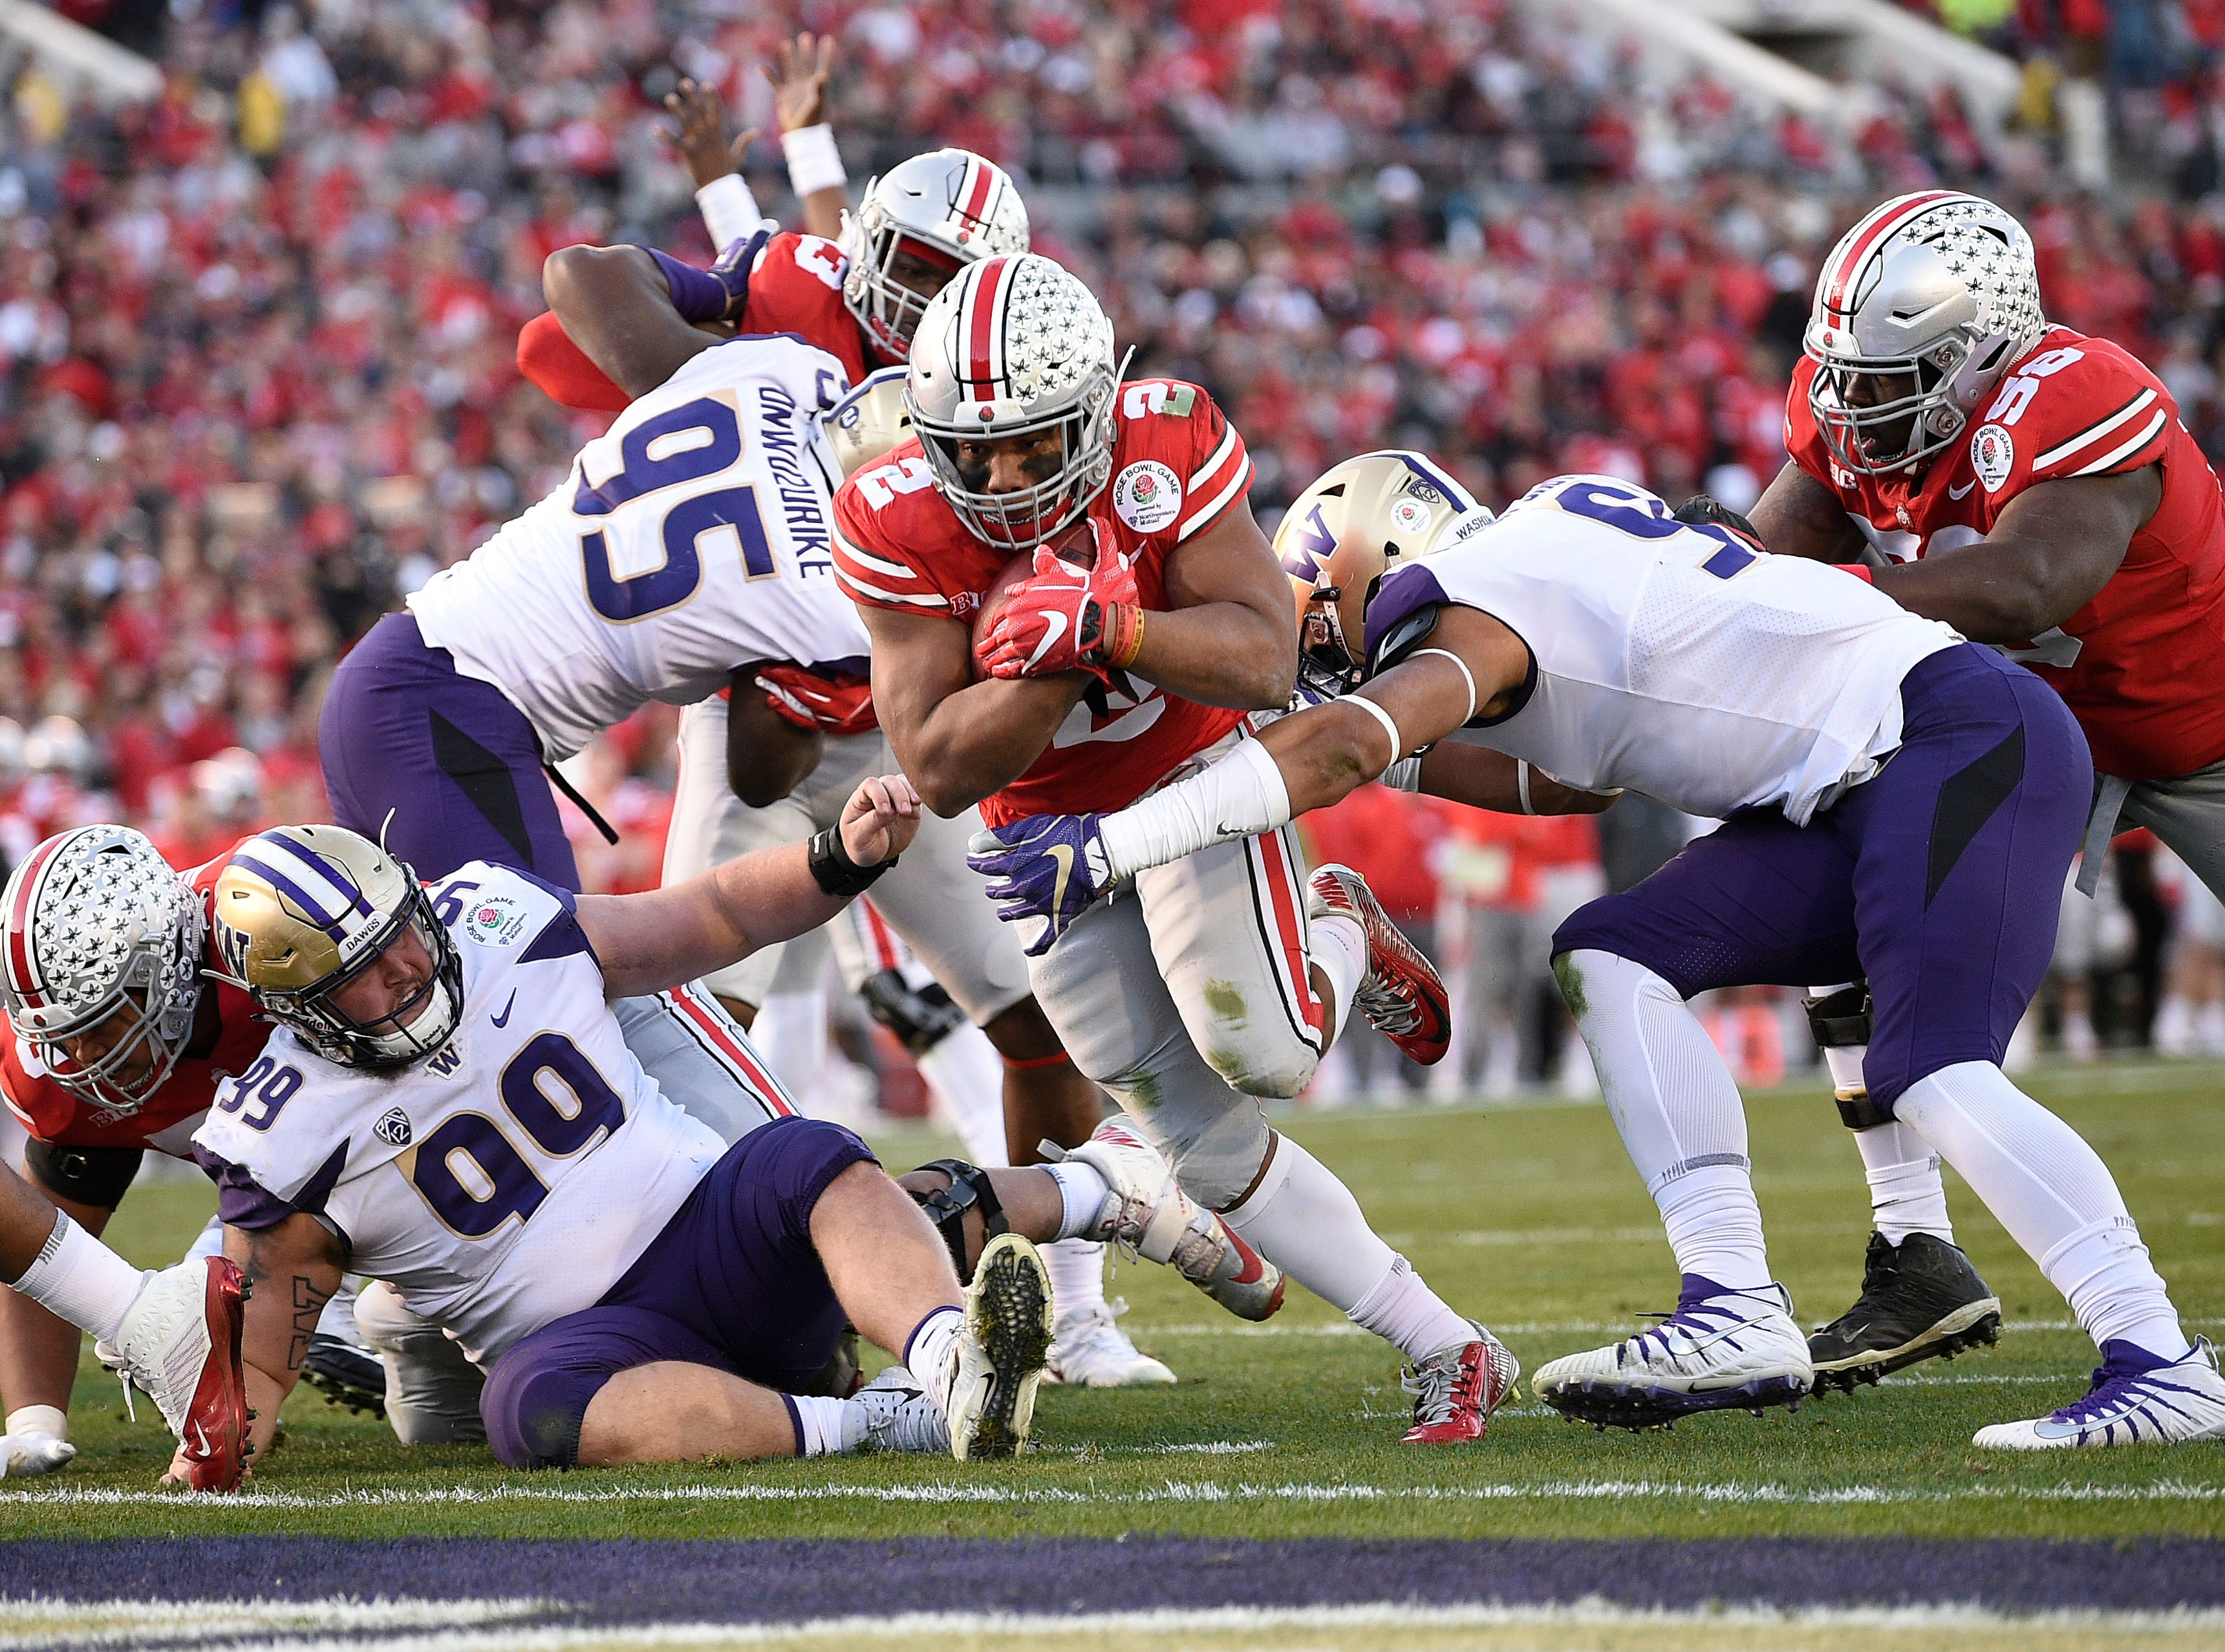 Ohio State Buckeyes running back J.K. Dobbins (2) runs in a touchdown against the Washington Huskies in the third quarter in the Rose Bowl.